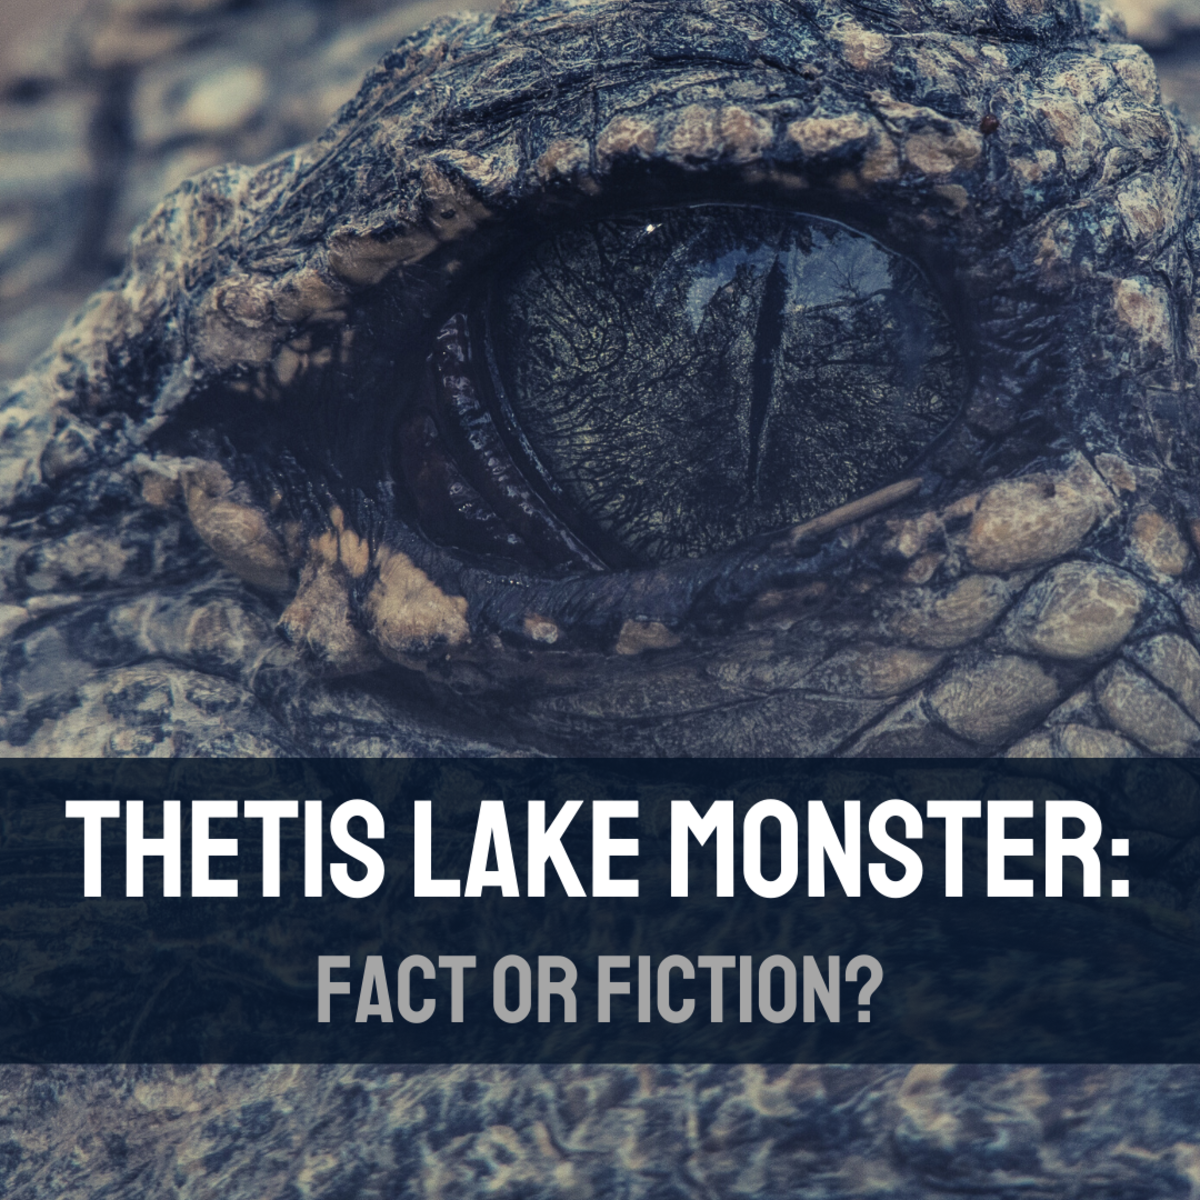 Discover the myth of the Thetis Lake Monster, and review some of the sightings of this creature.